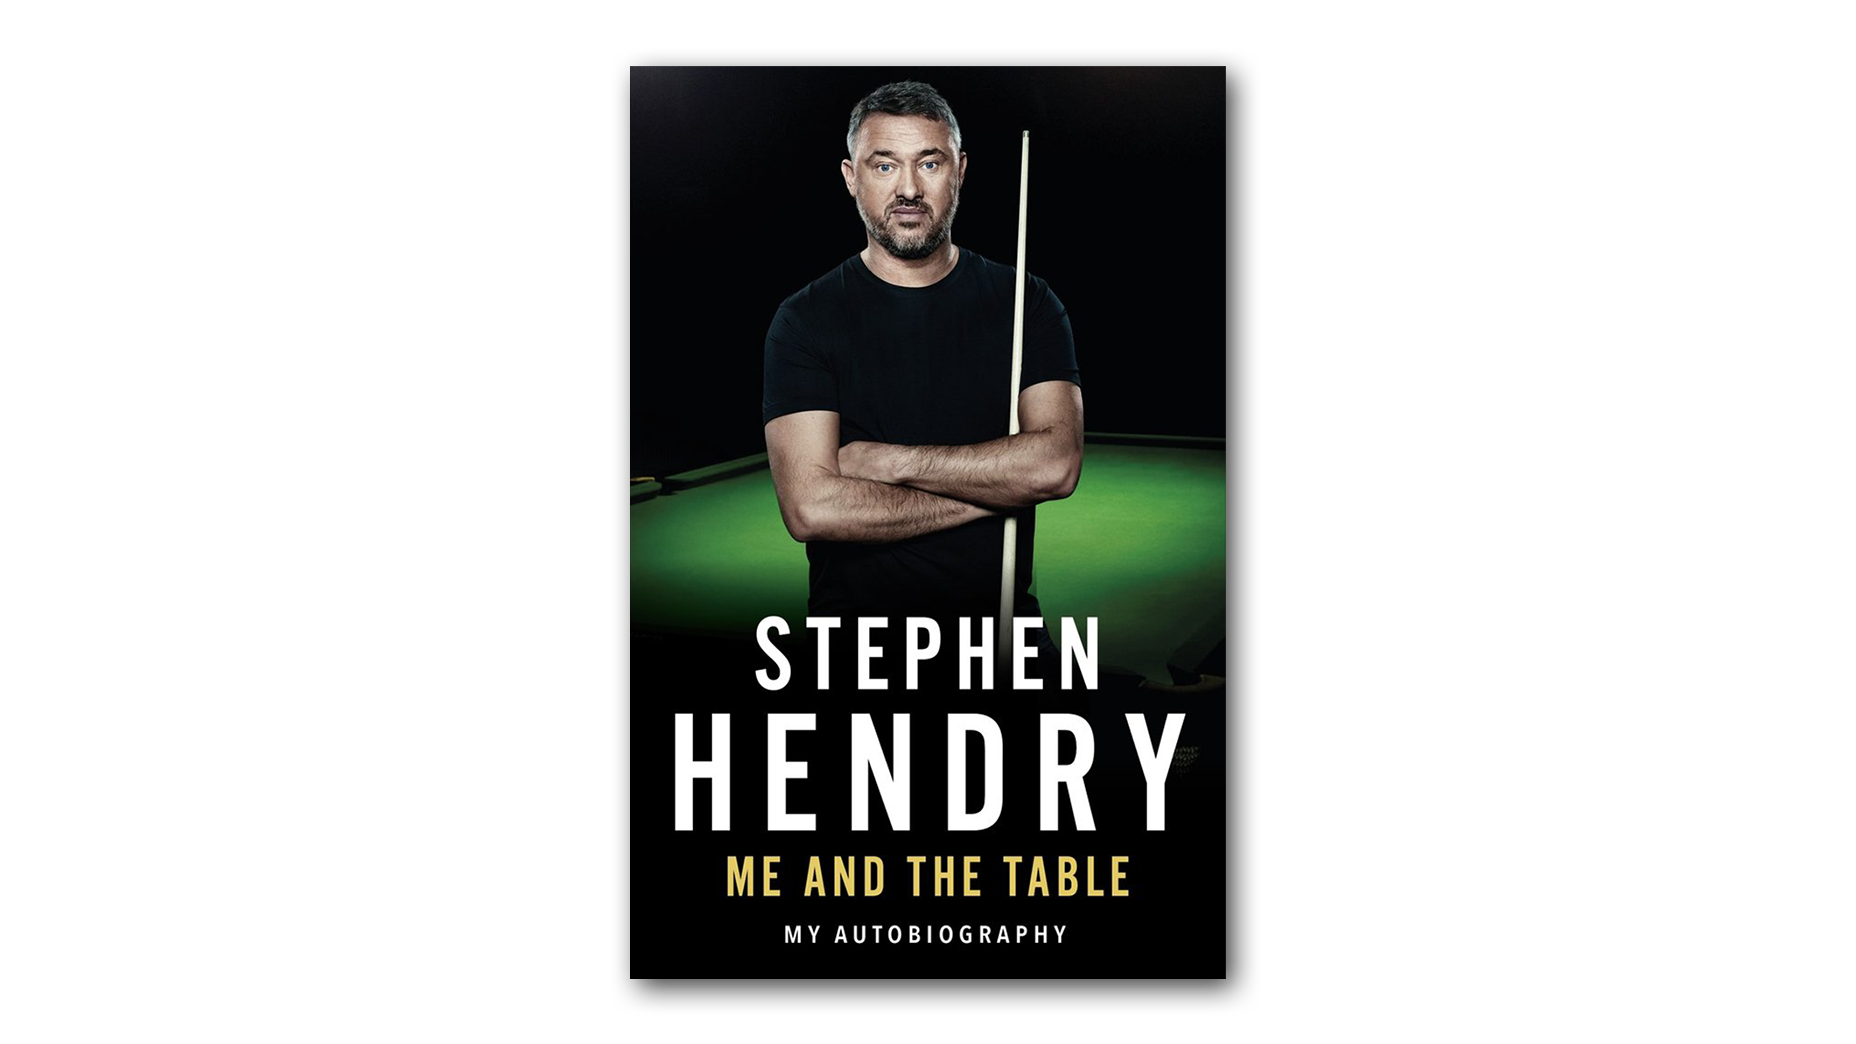 Me and the Table - My Autobiography by Stephen Hendry